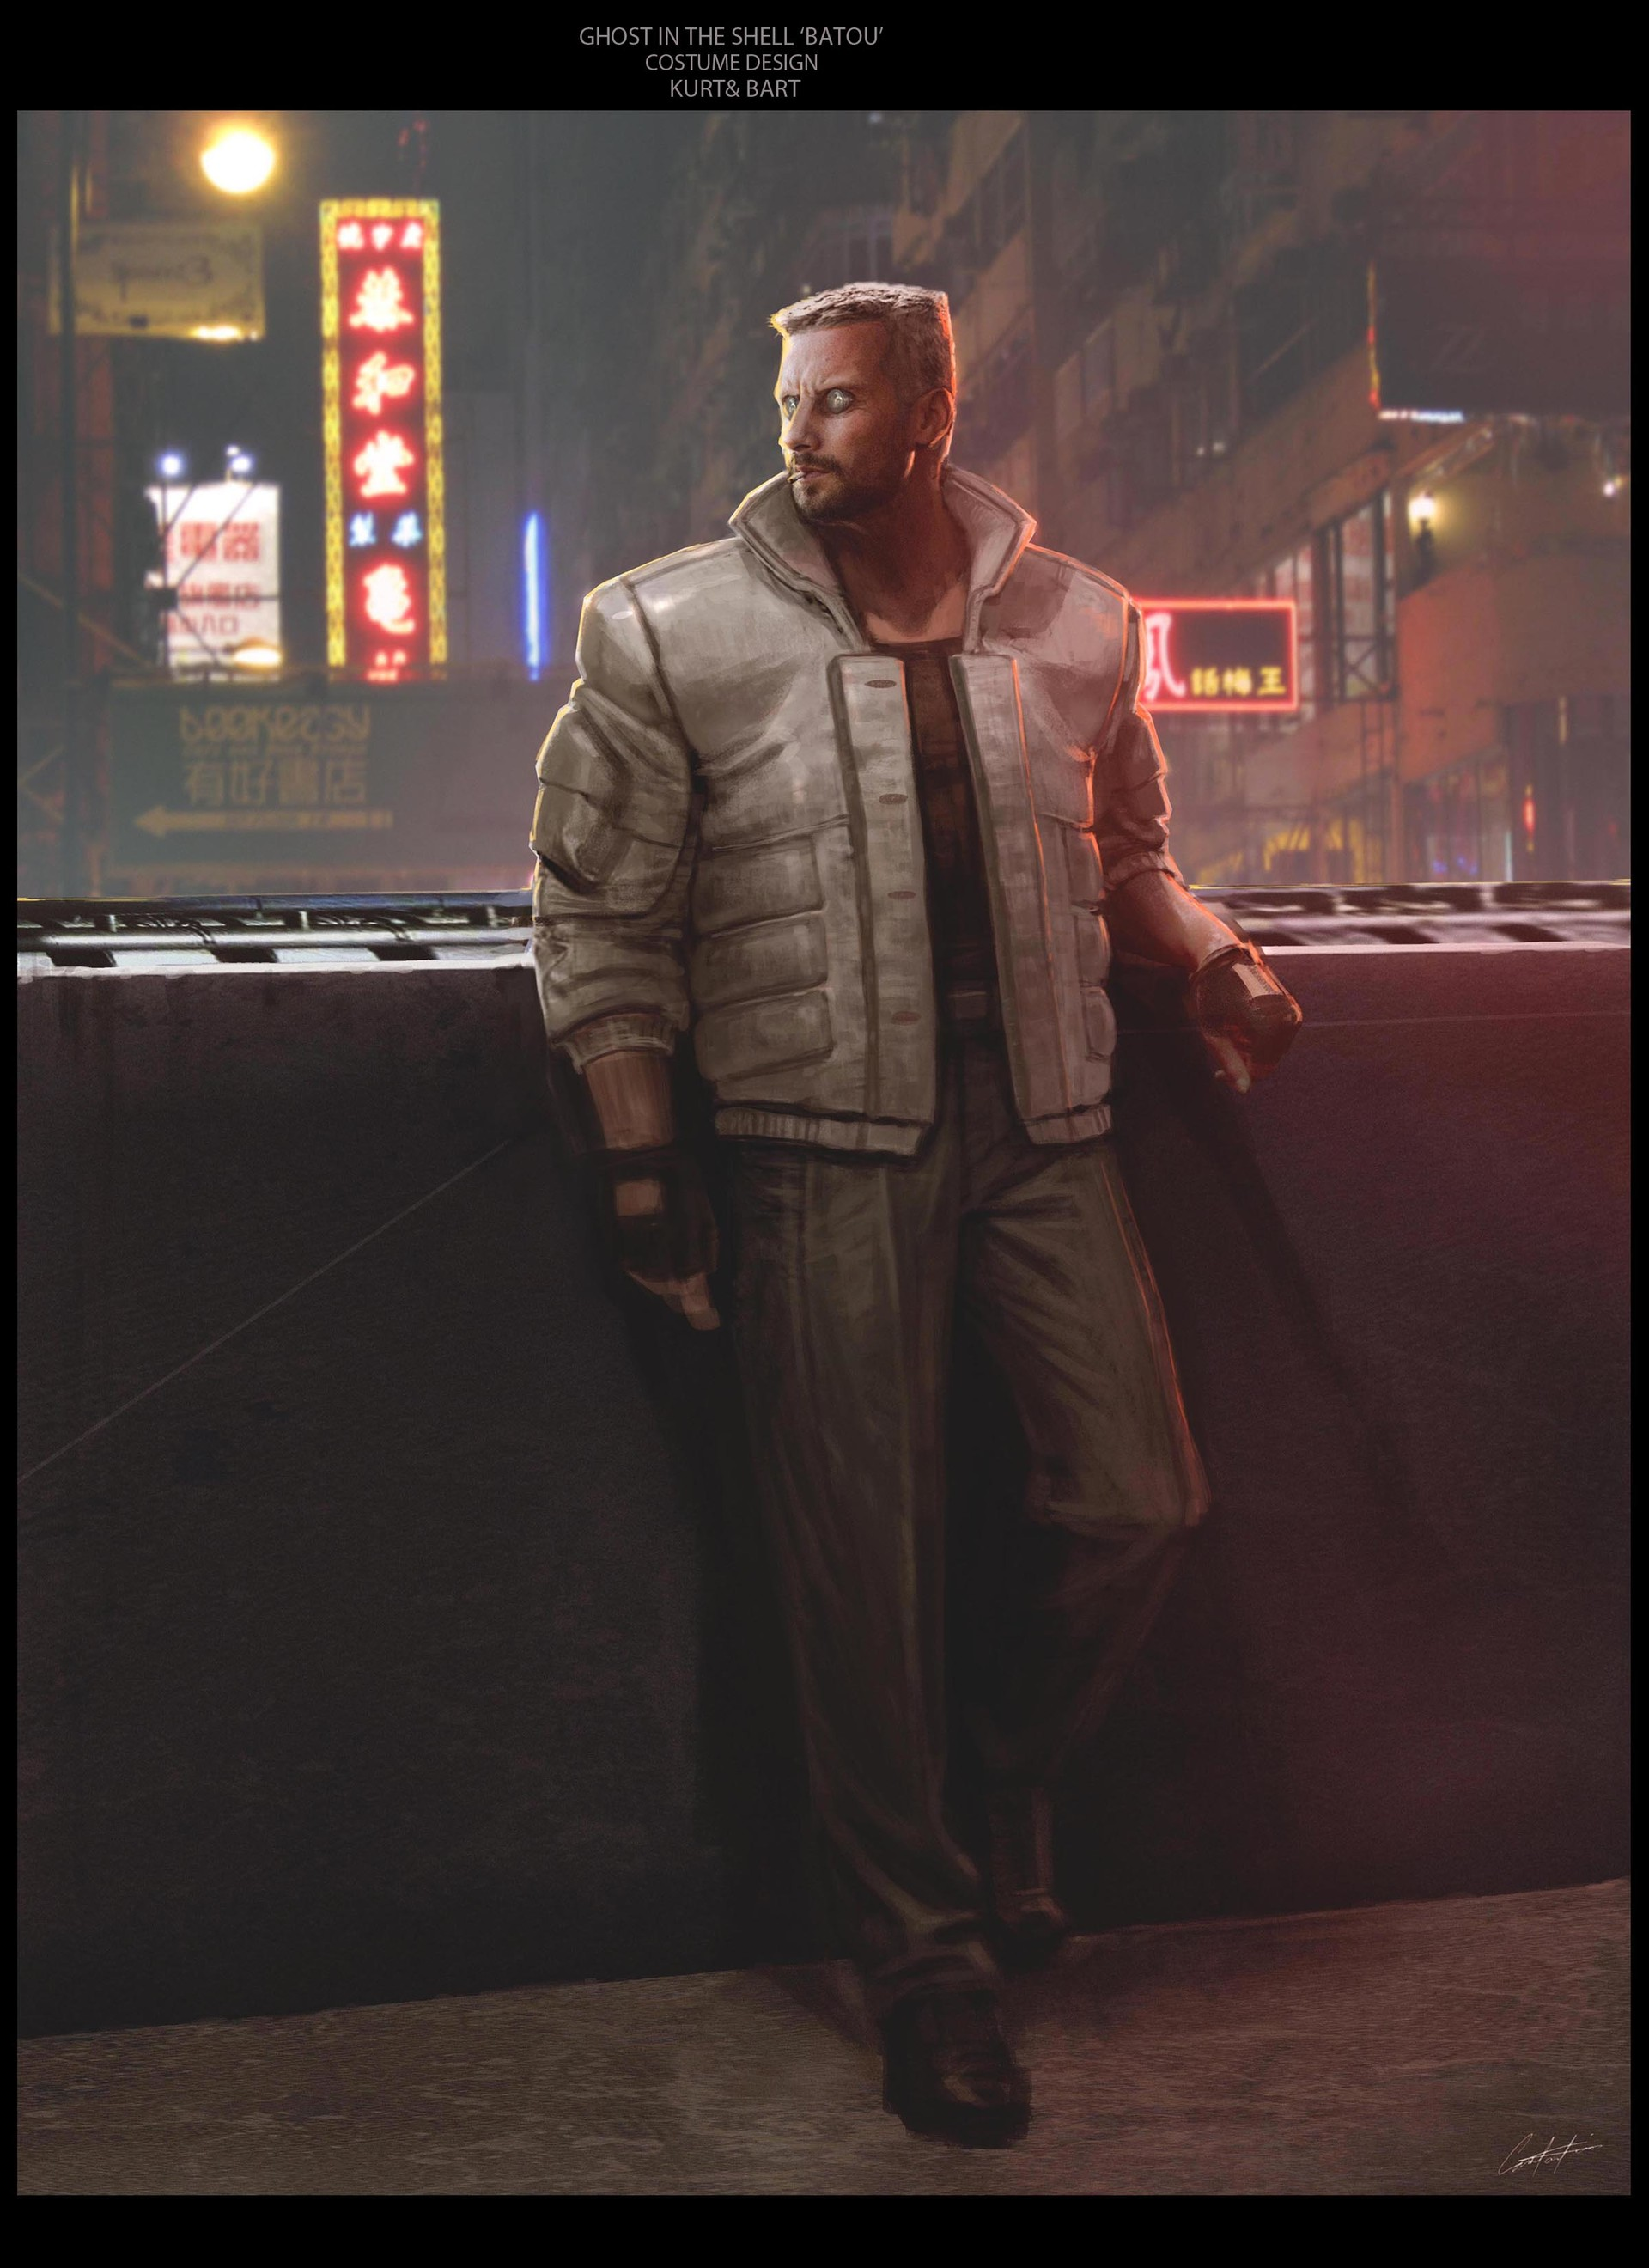 Artstation Ghost In The Shell Batou Constantine Sekeris